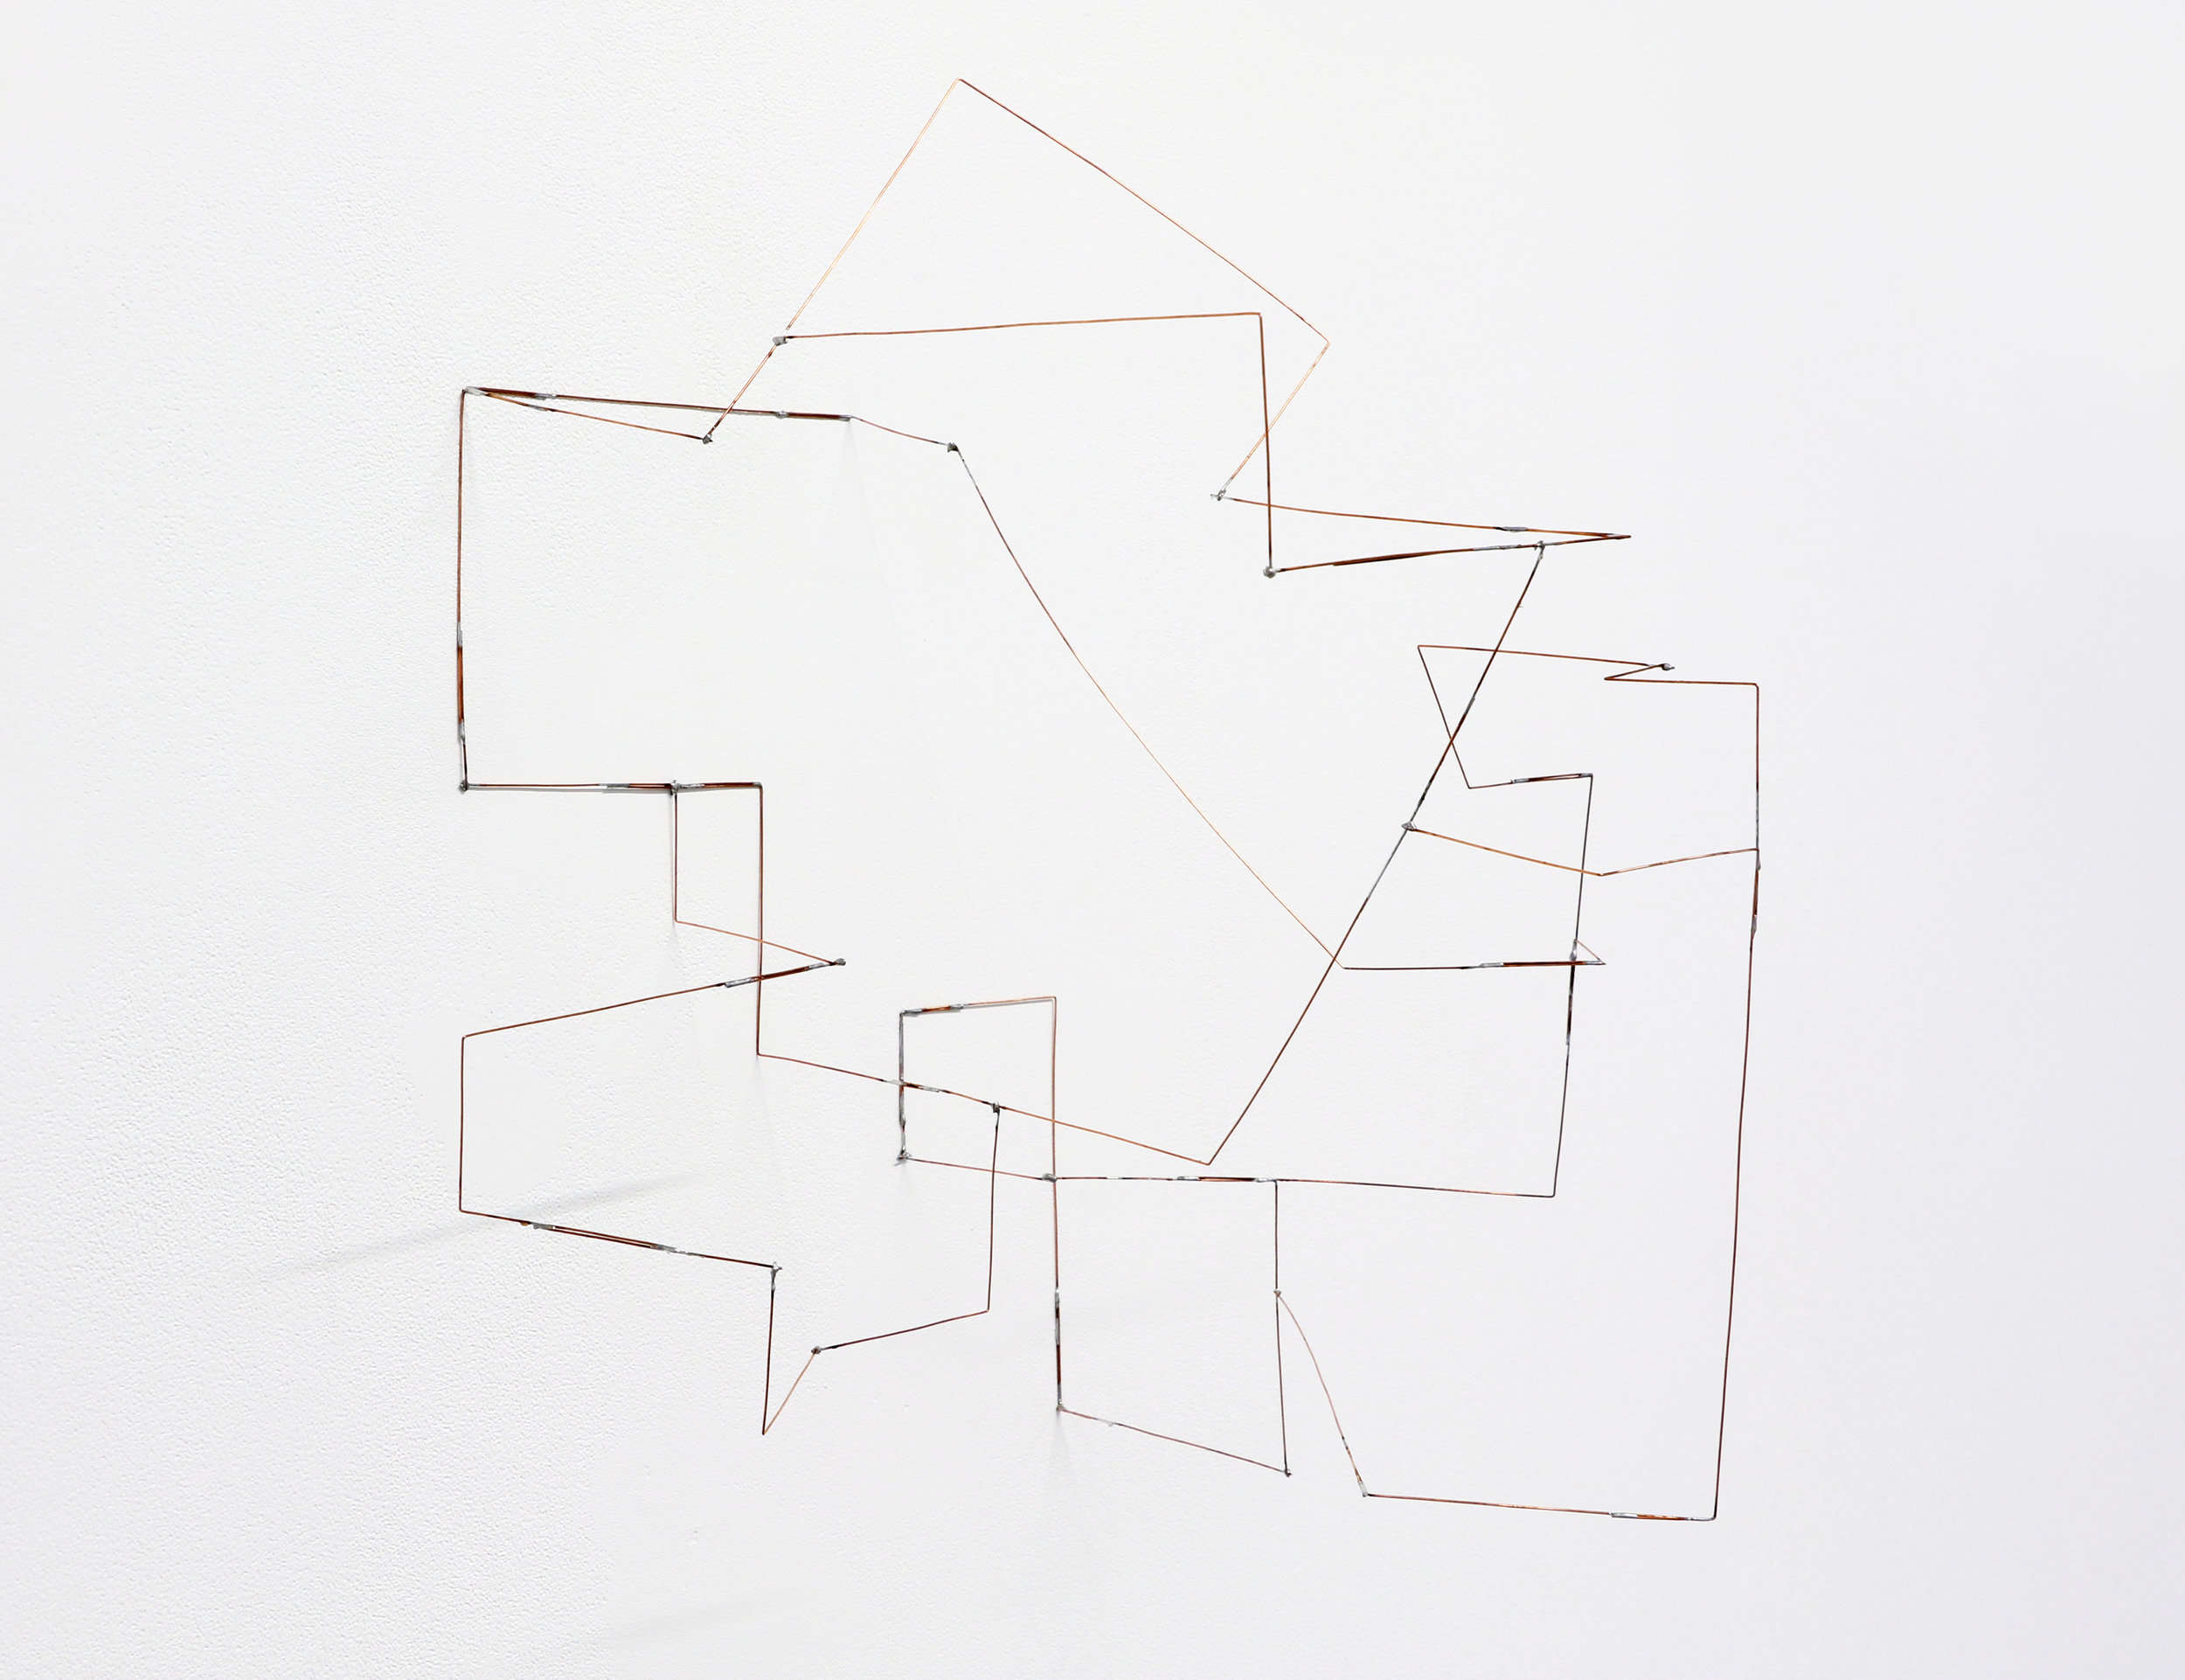 """Quindt , 2019, soldered copper-coated steel wire, 19"""" x 16"""" x 13"""""""